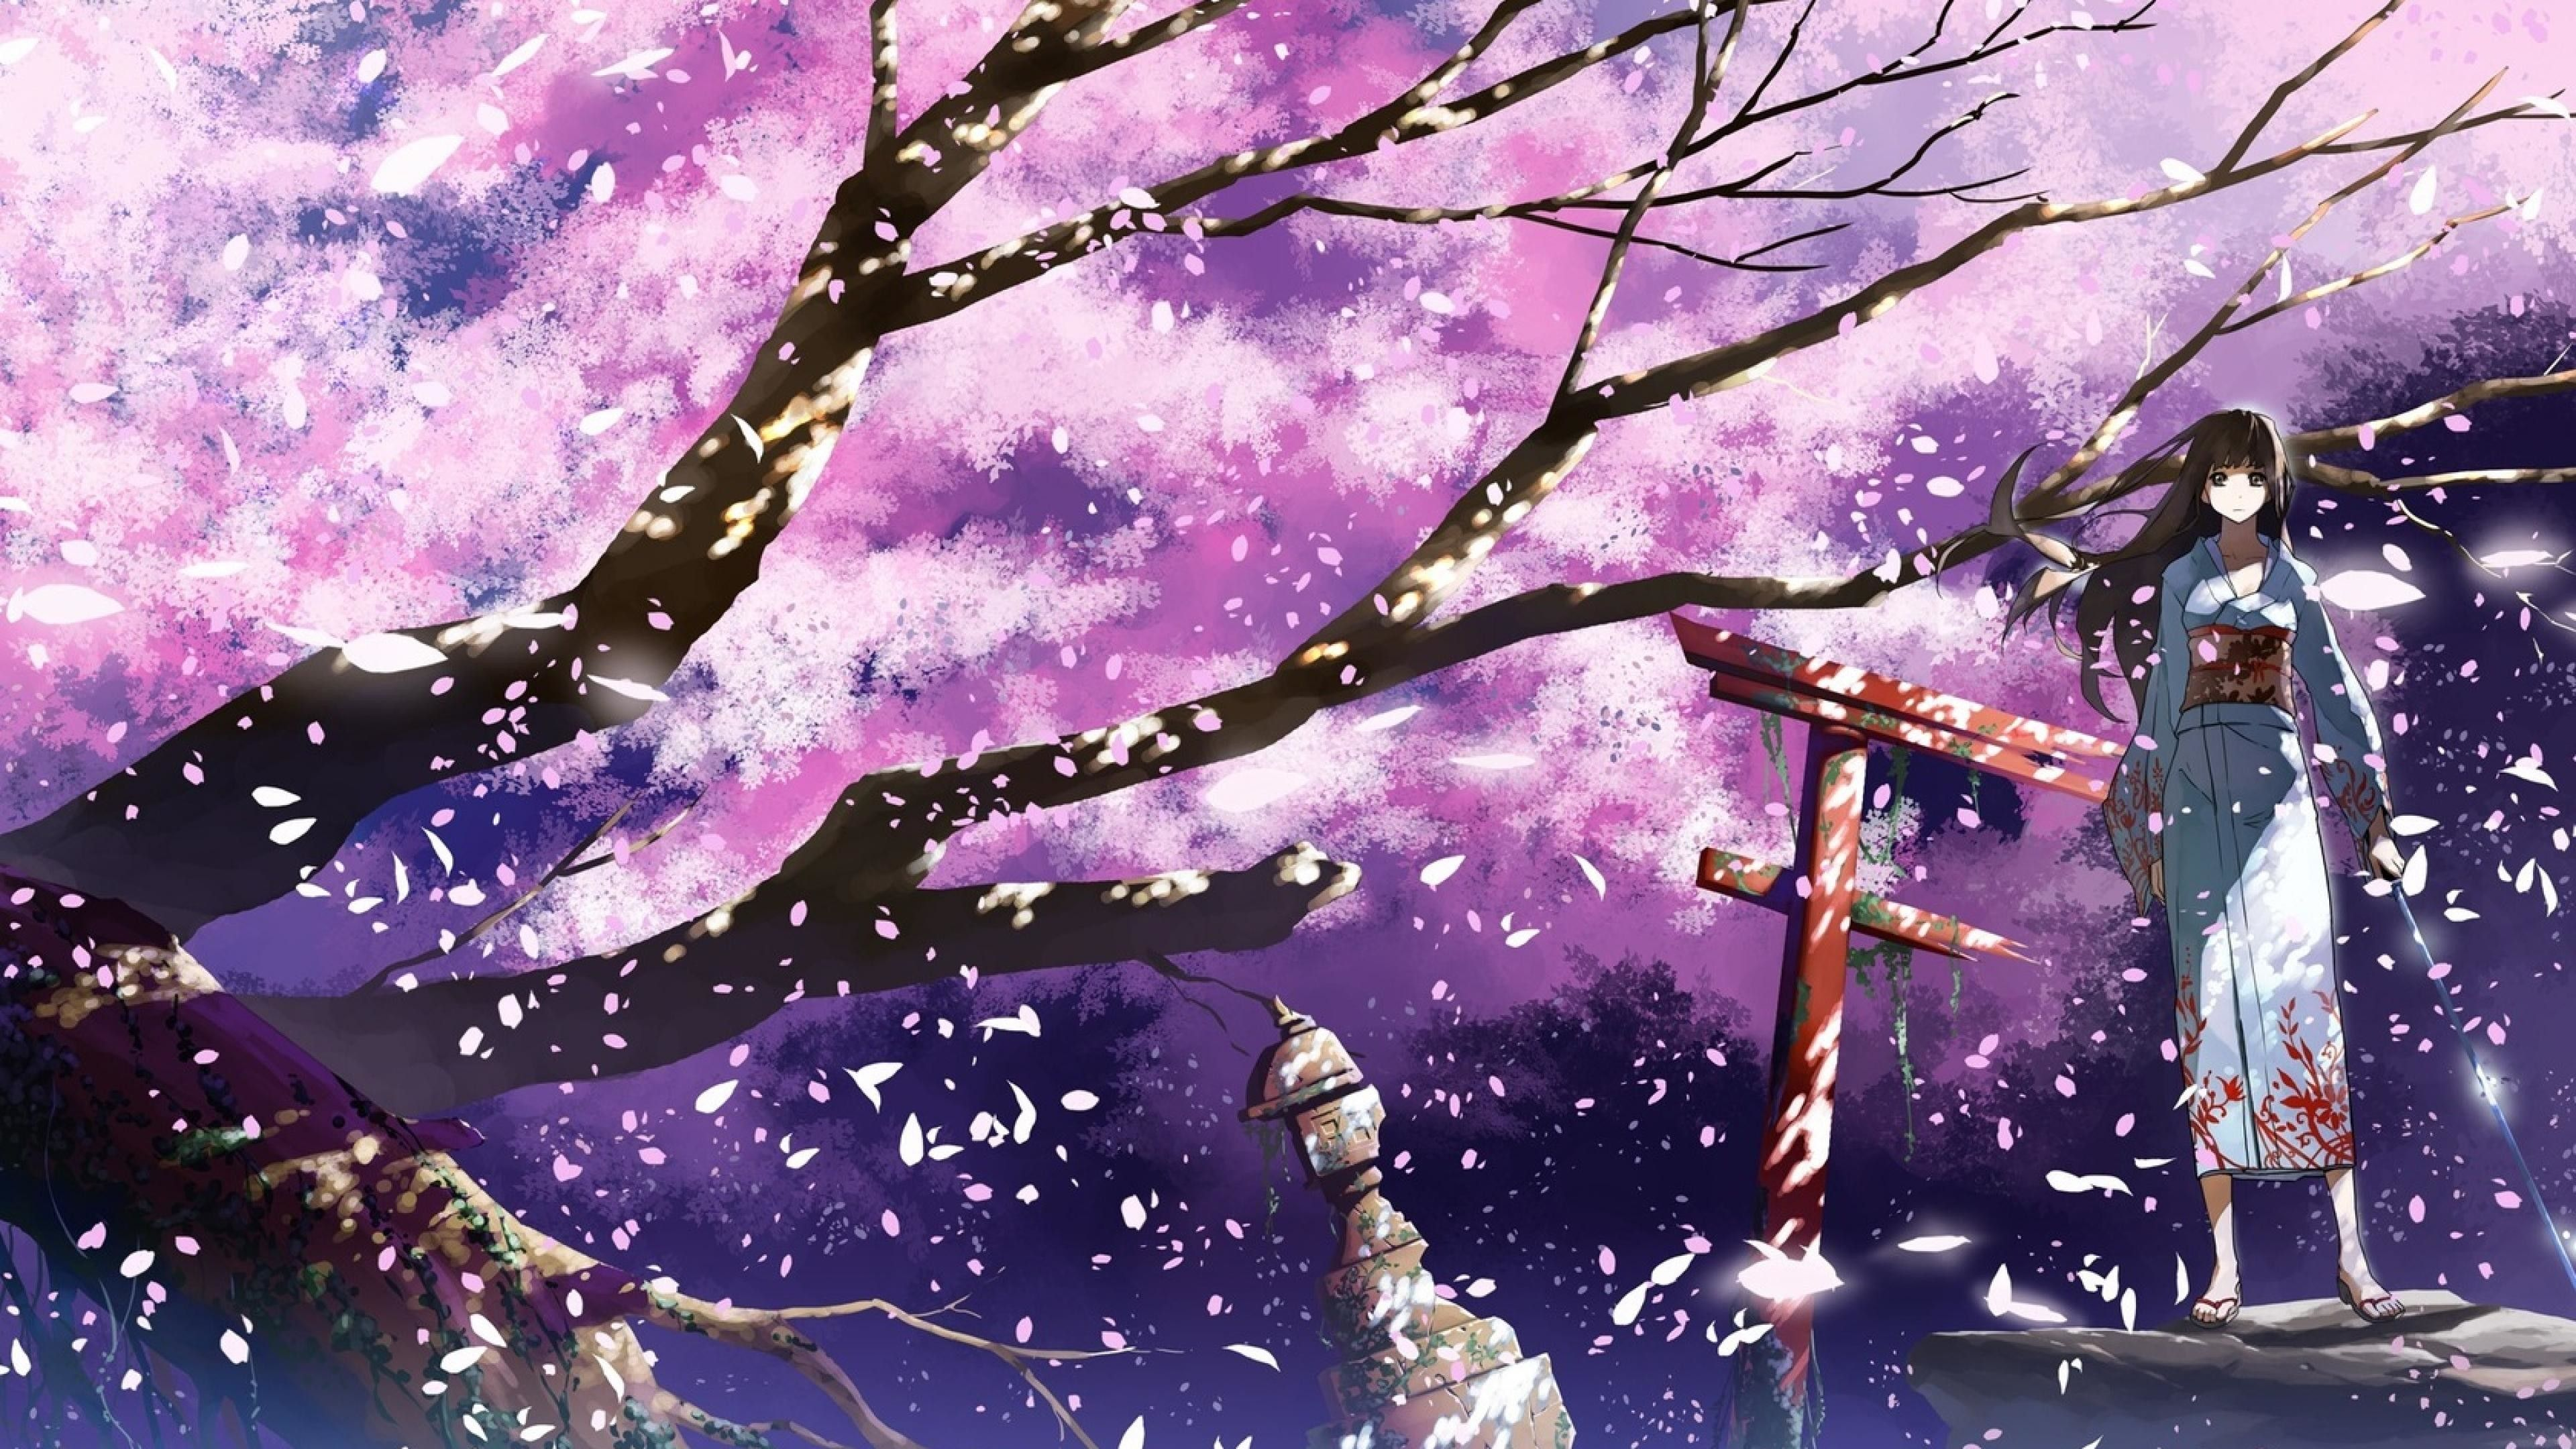 3840x2160 Desktop 4k Of The Day 15 20 Cherry Blossoms Anime Cherry Blossom Cherry Blossom Wallpaper Anime Wallpaper